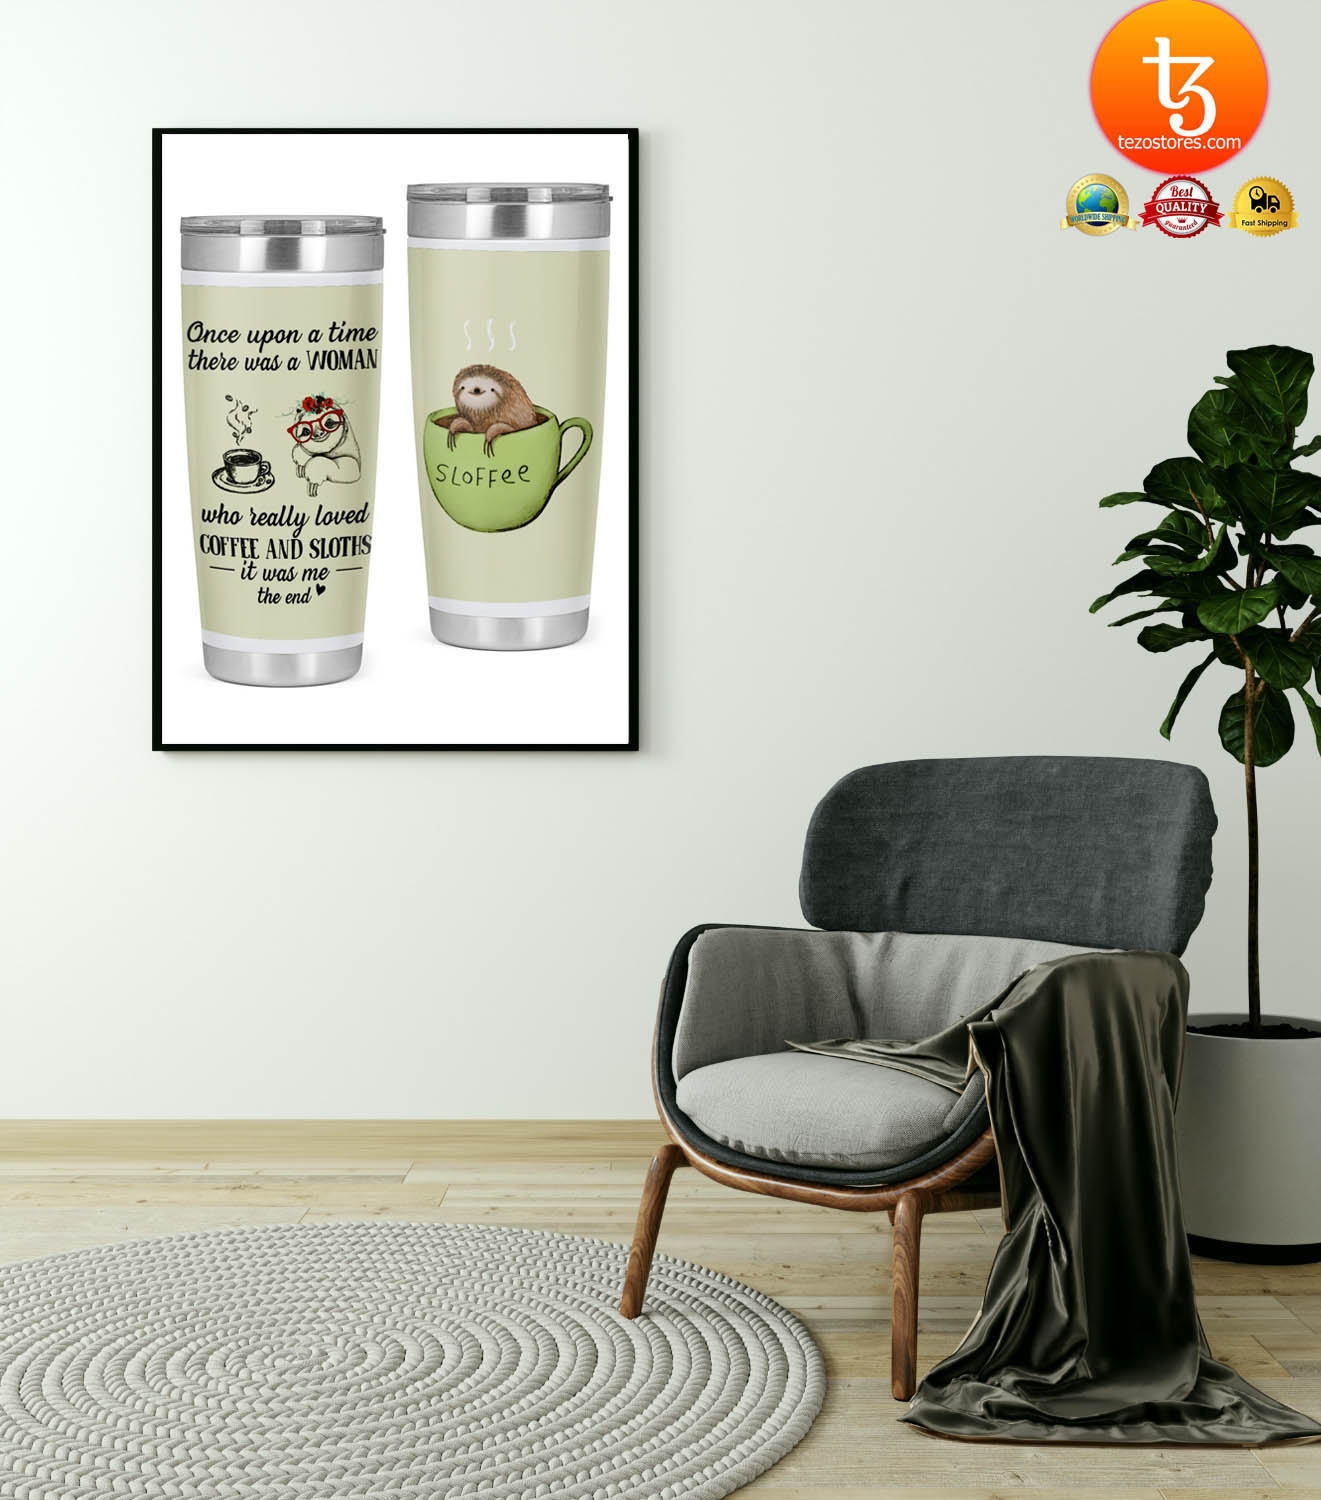 Once upon a time there was a woman who really loved coffee and sloths tumbler 19